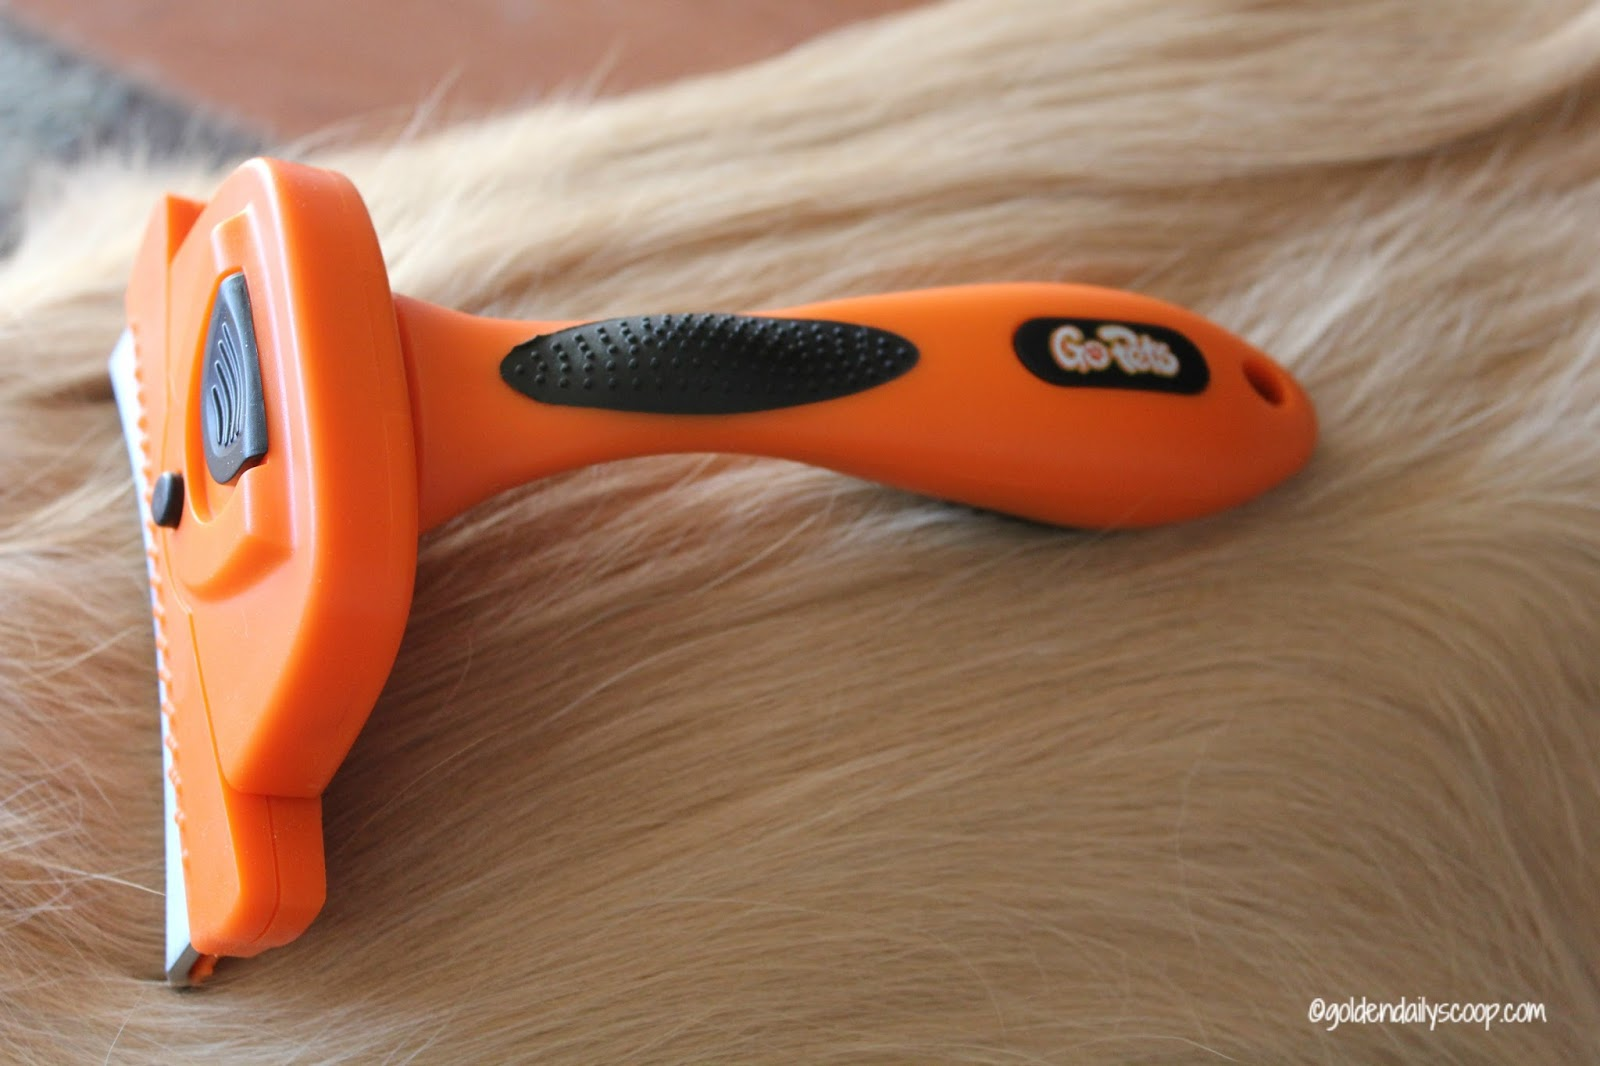 Dog Grooming Tools By Gopets Review And Giveaway Golden Daily Scoop